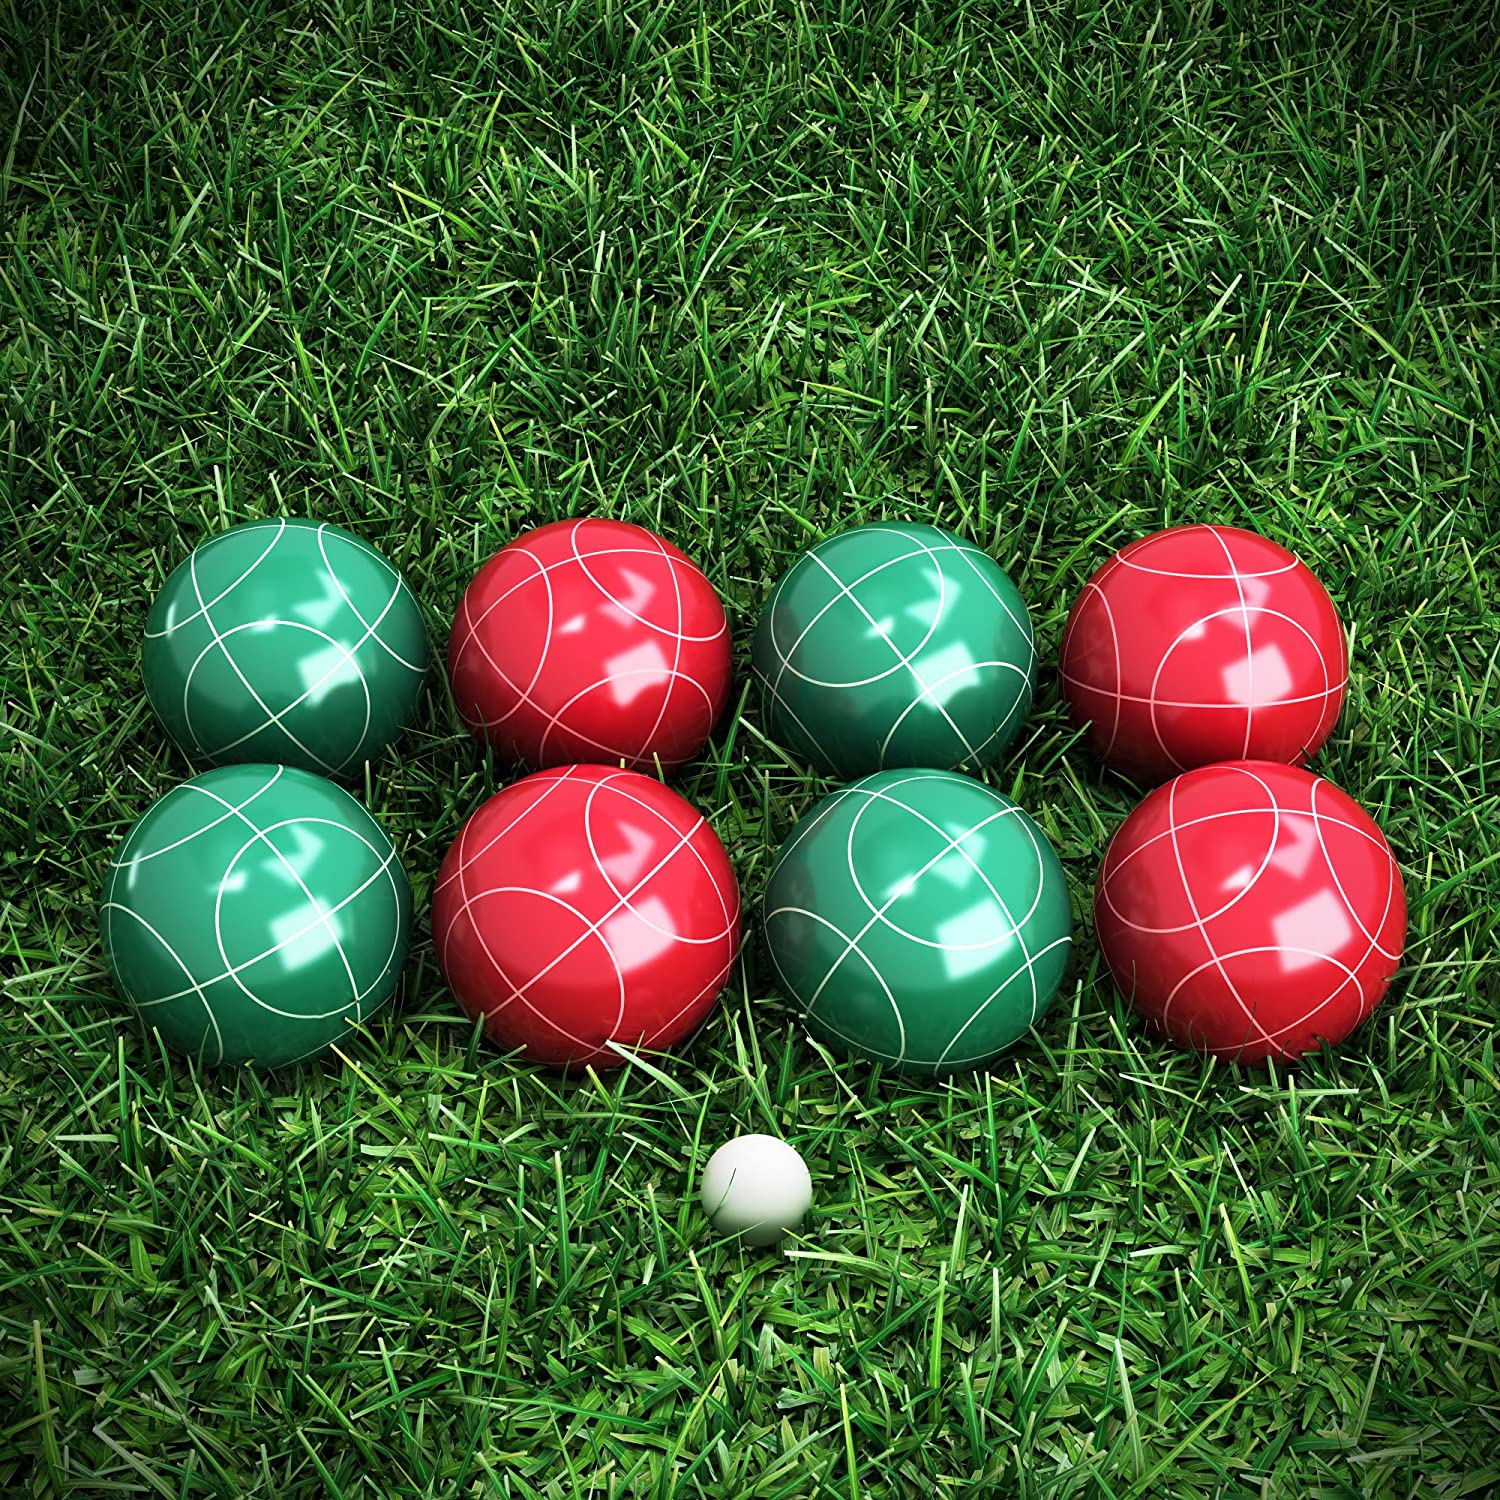 Amazon Bocce Ball Set Outdoor Family Bocce Game for